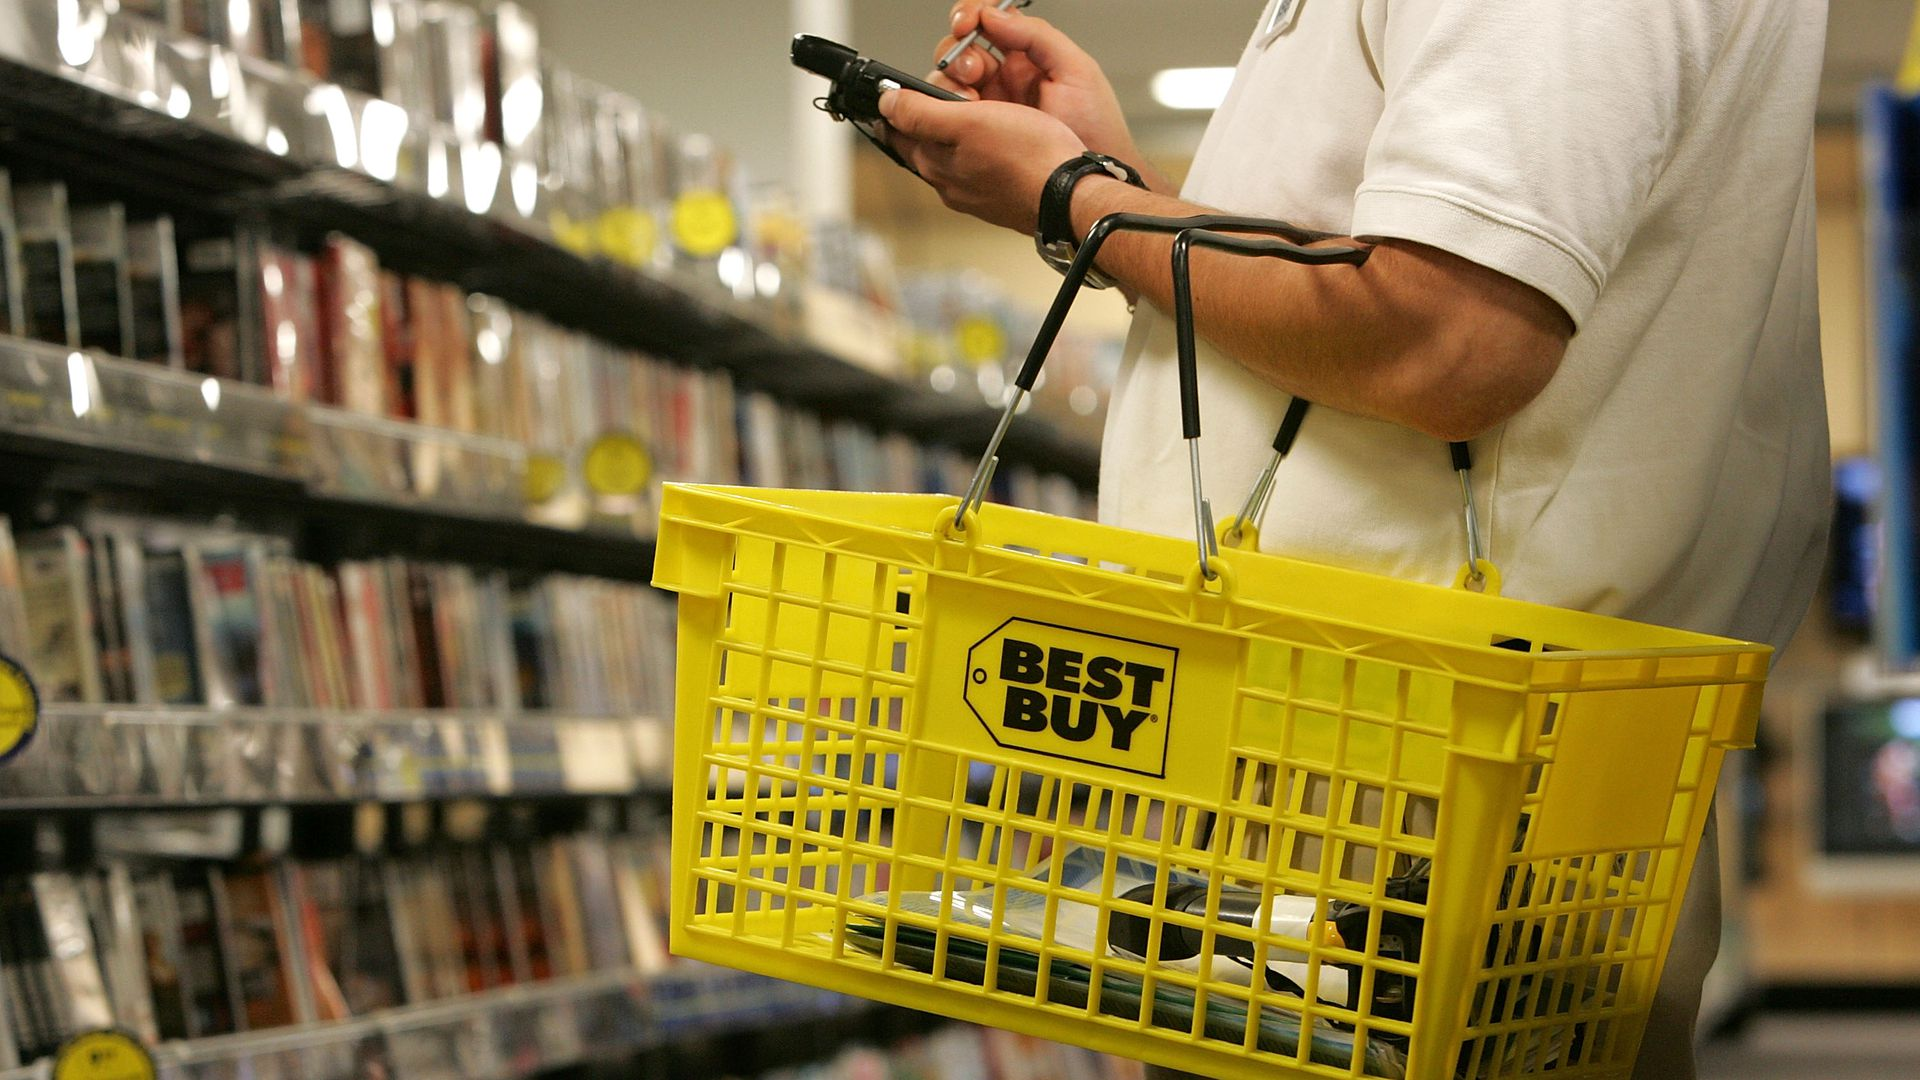 A salesman carries a Best Buy shopping basket.